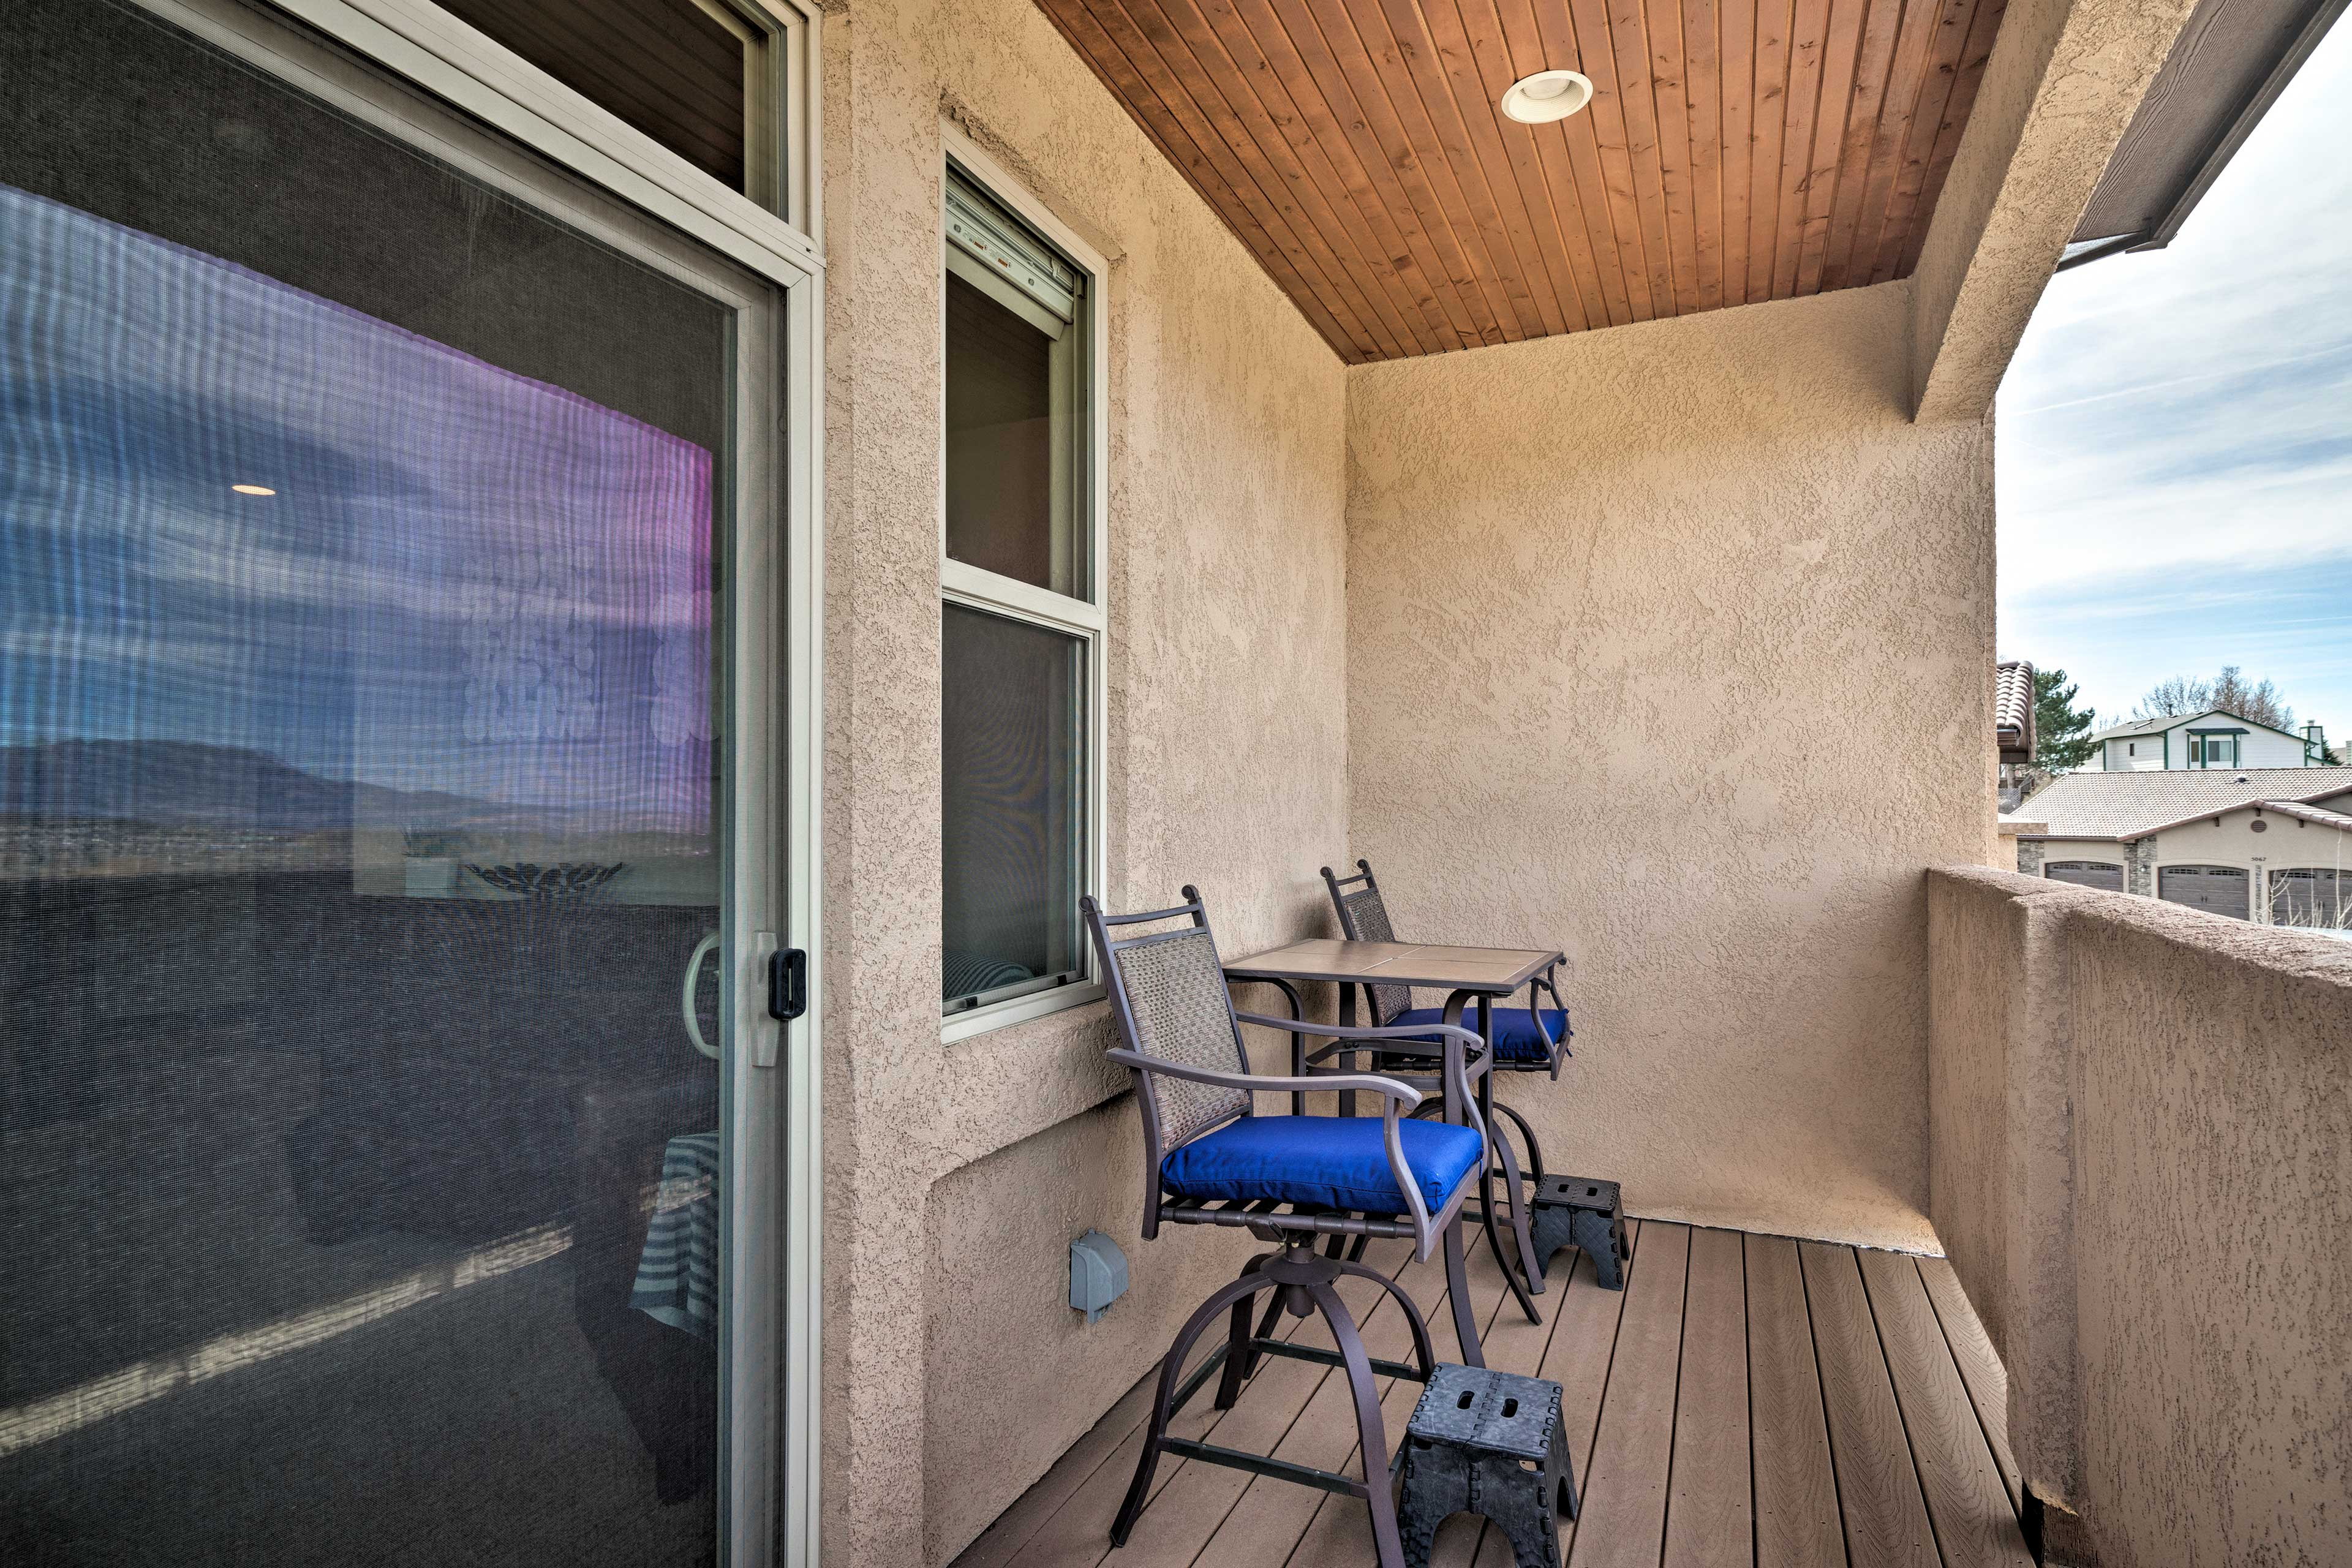 Roll out of bed and onto this patio for stunning early-morning views.